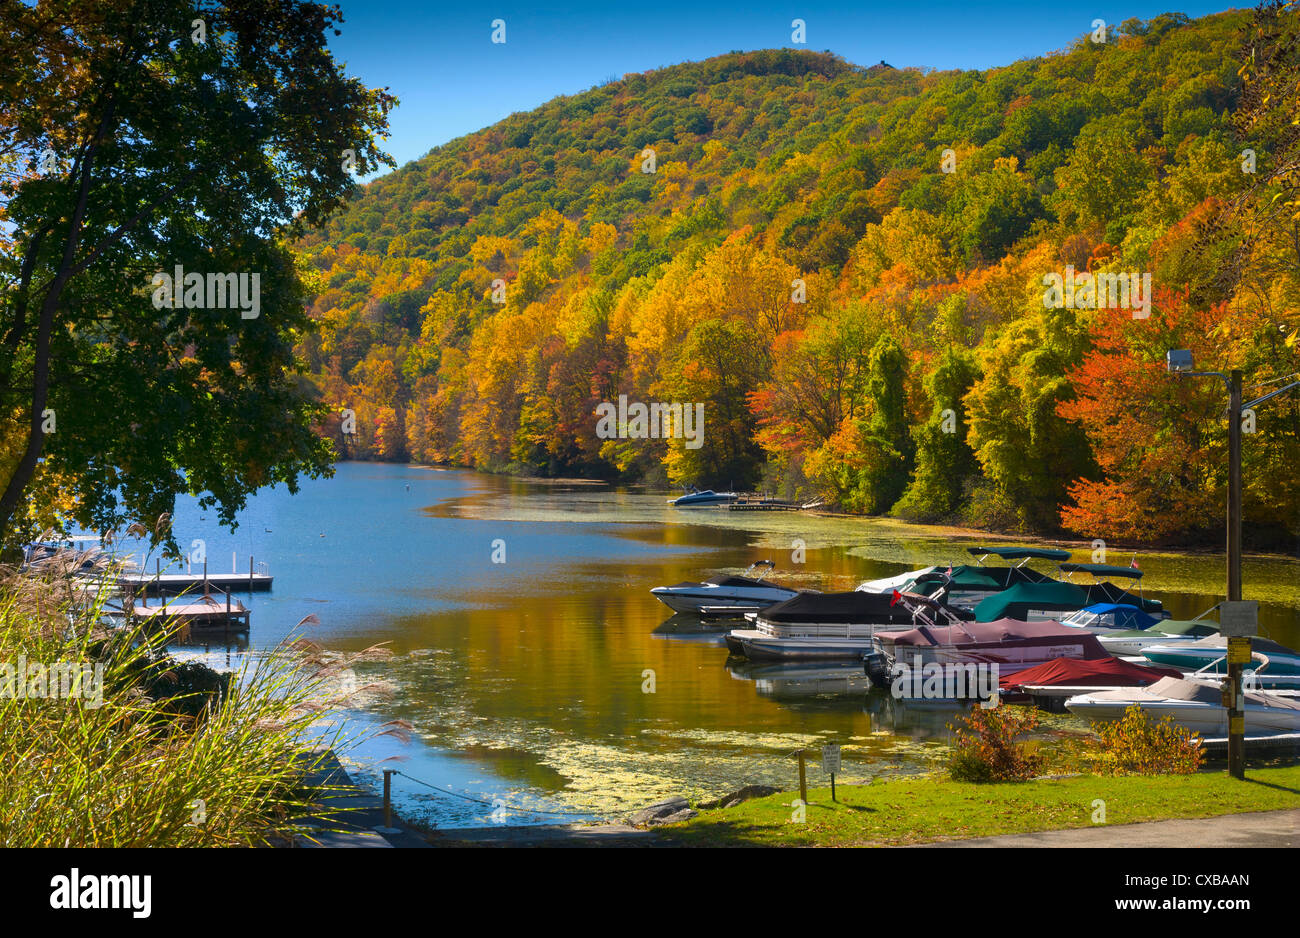 Candlewood Lake, New York, la Nouvelle-Angleterre, États-Unis d'Amérique, Amérique du Nord Photo Stock